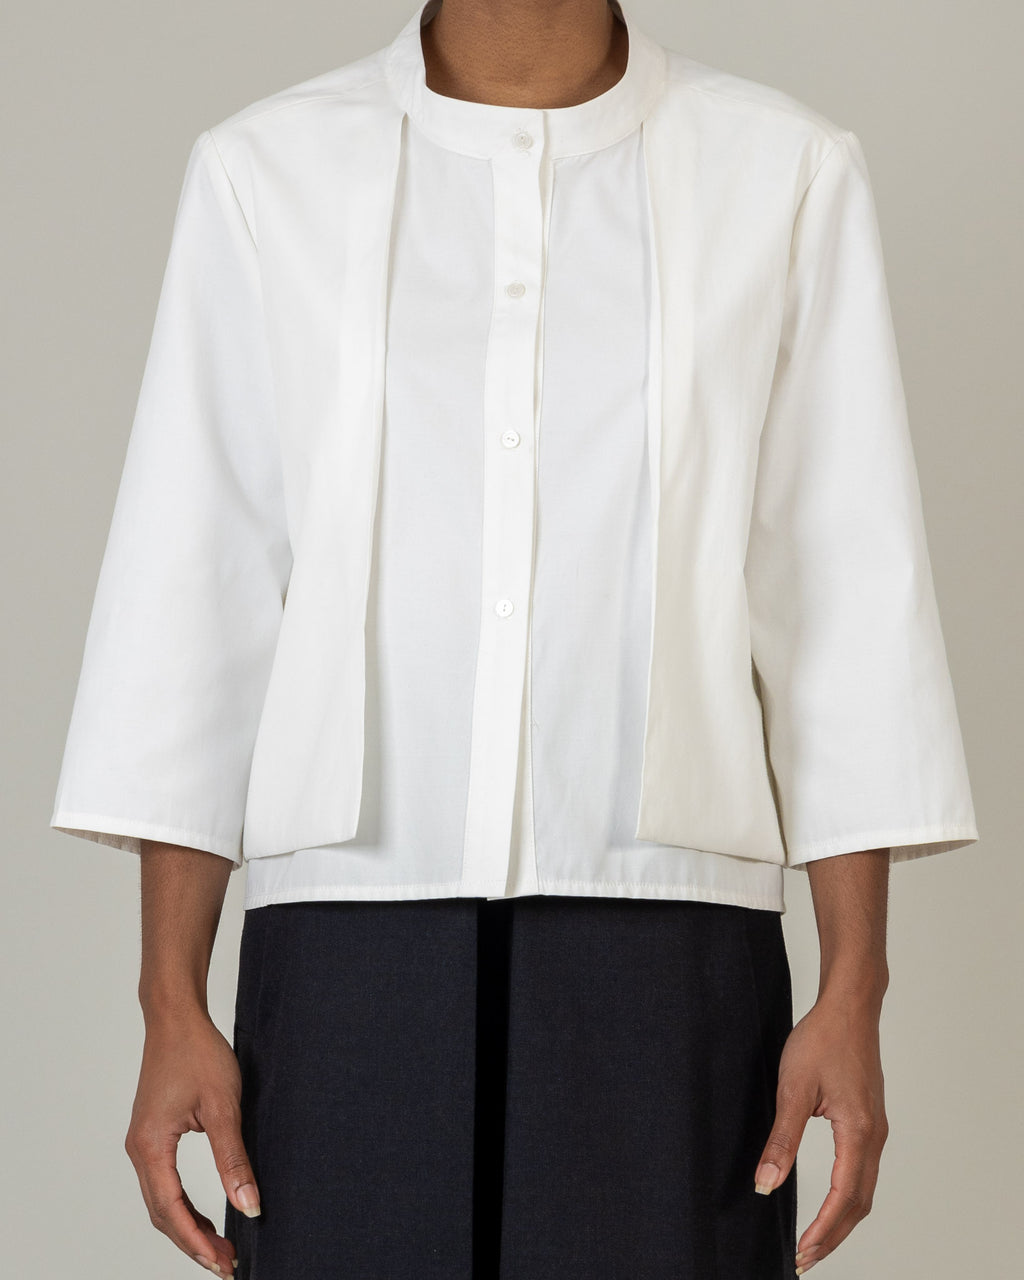 Over Layer Pleat Shirt - S13W - MAE MAZE